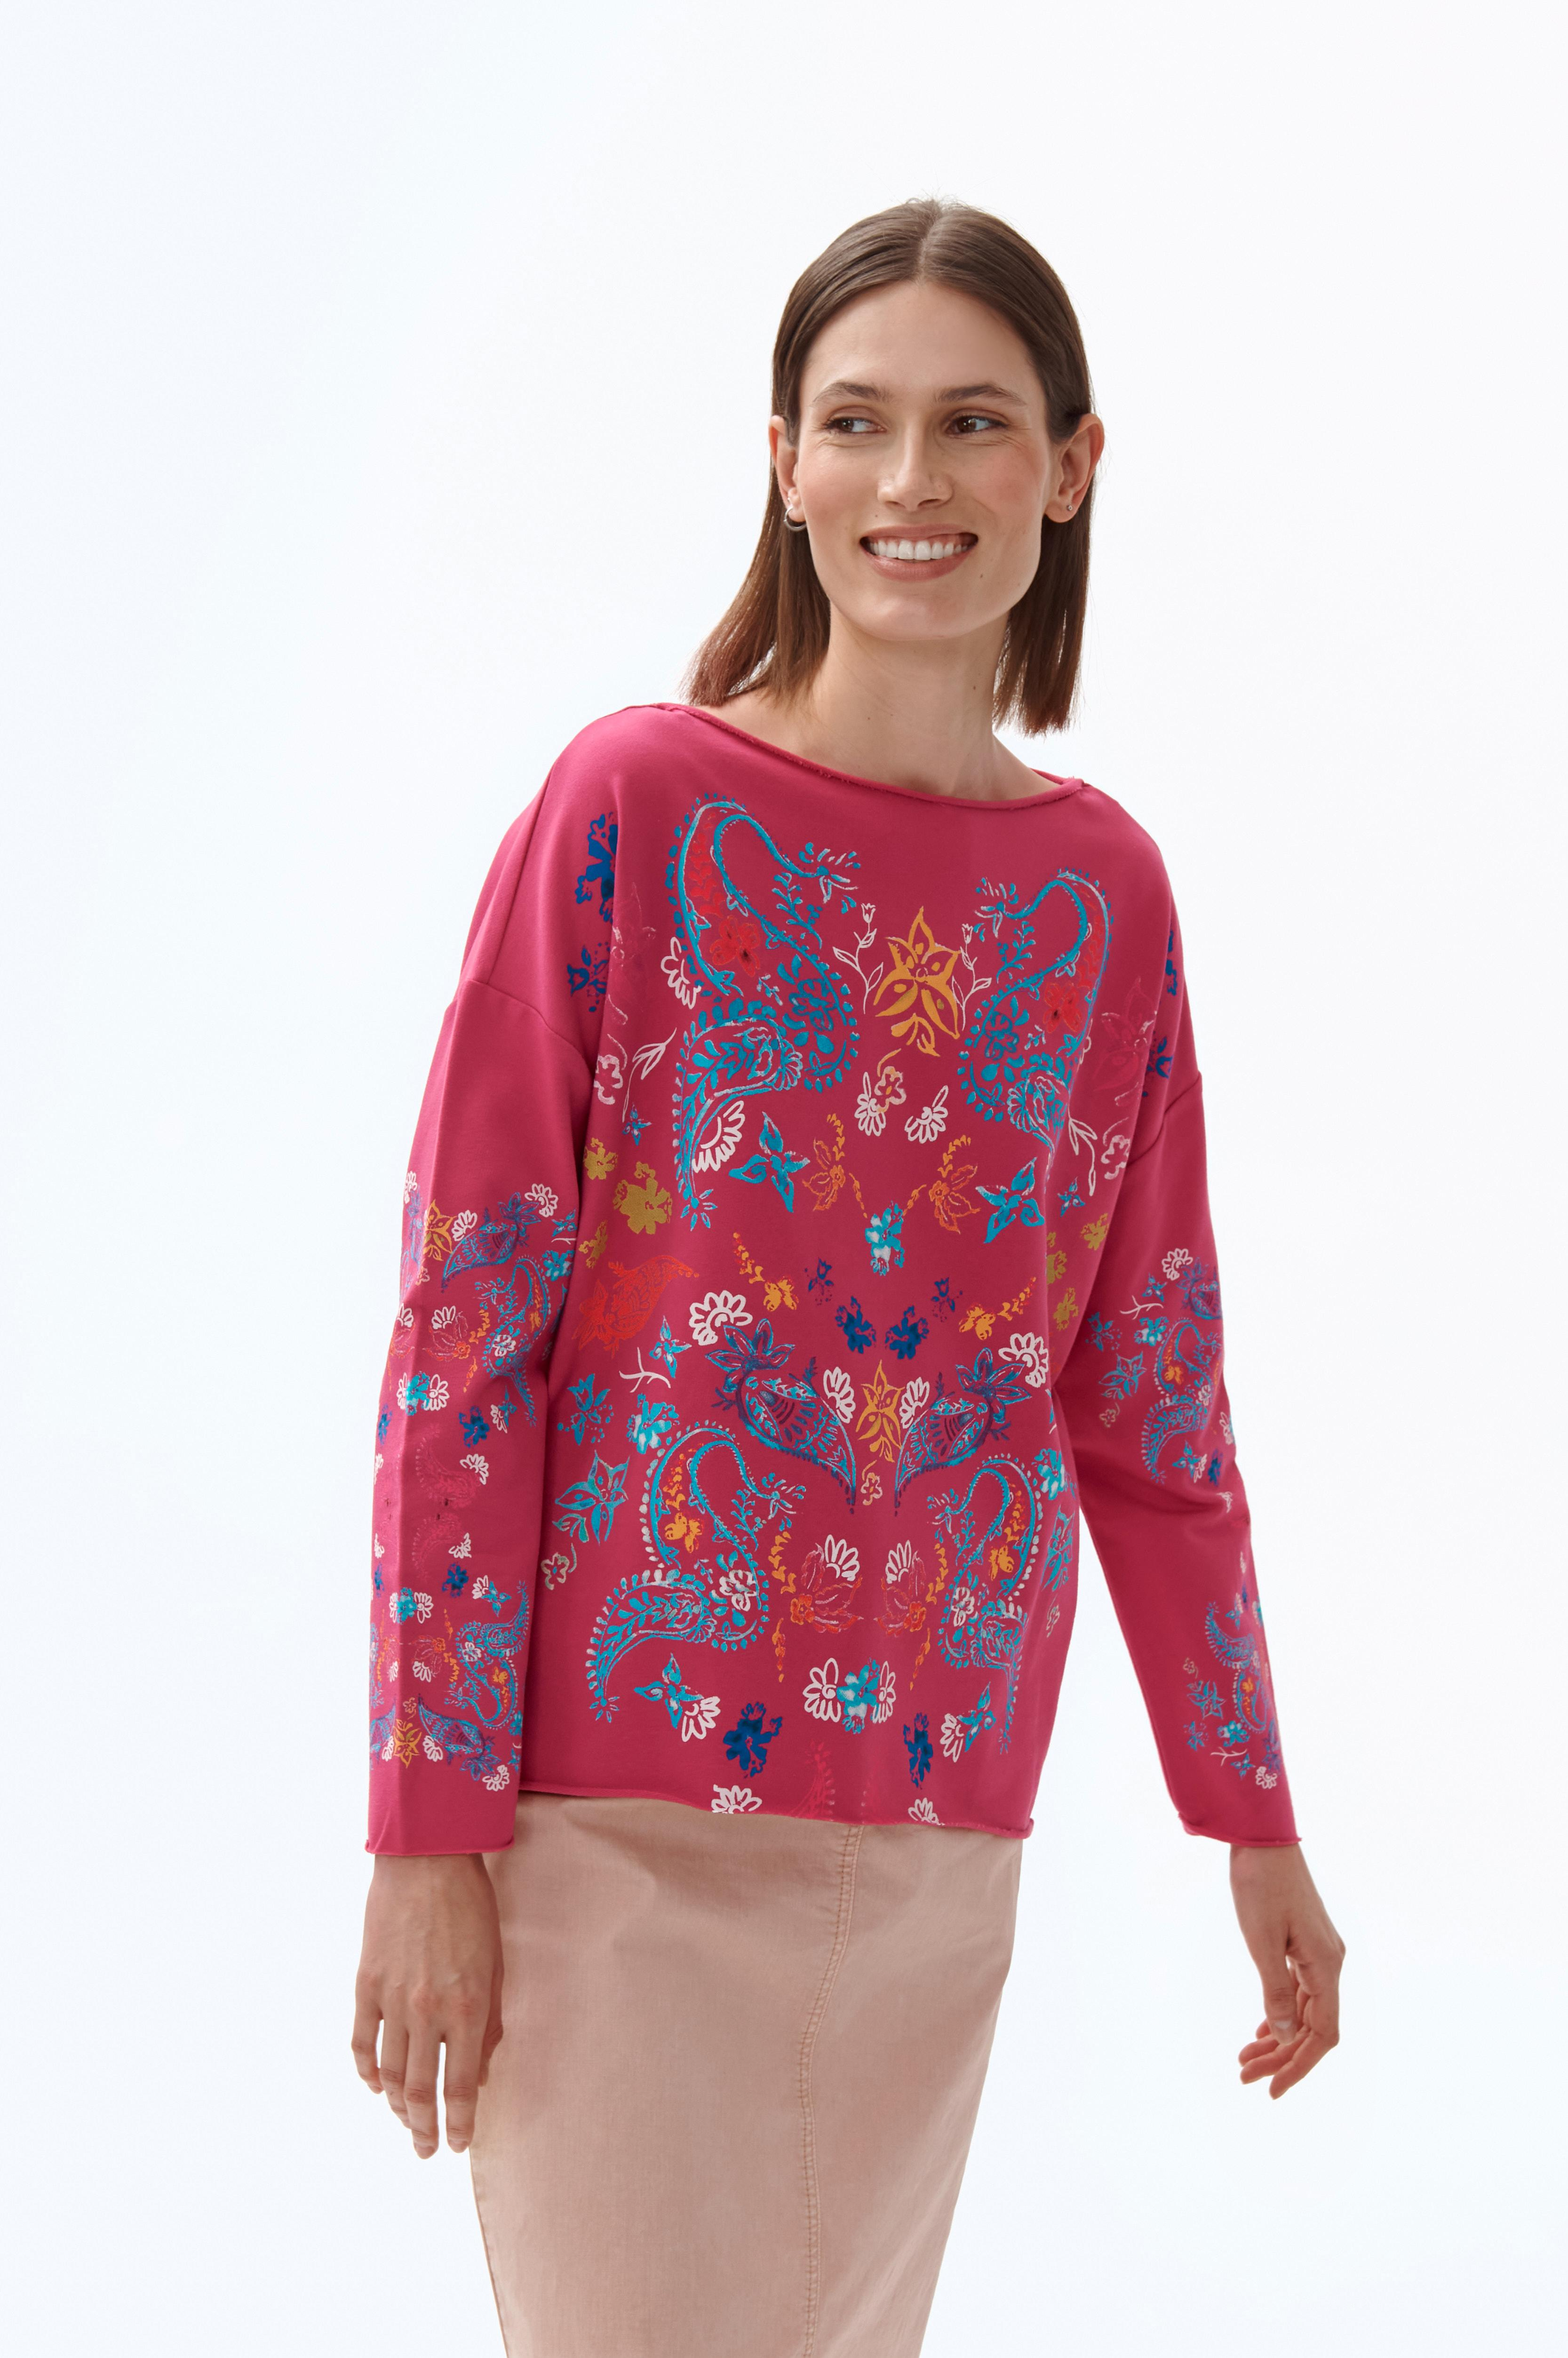 LADIES' KNITTED SWEATSHIRT MALI 1